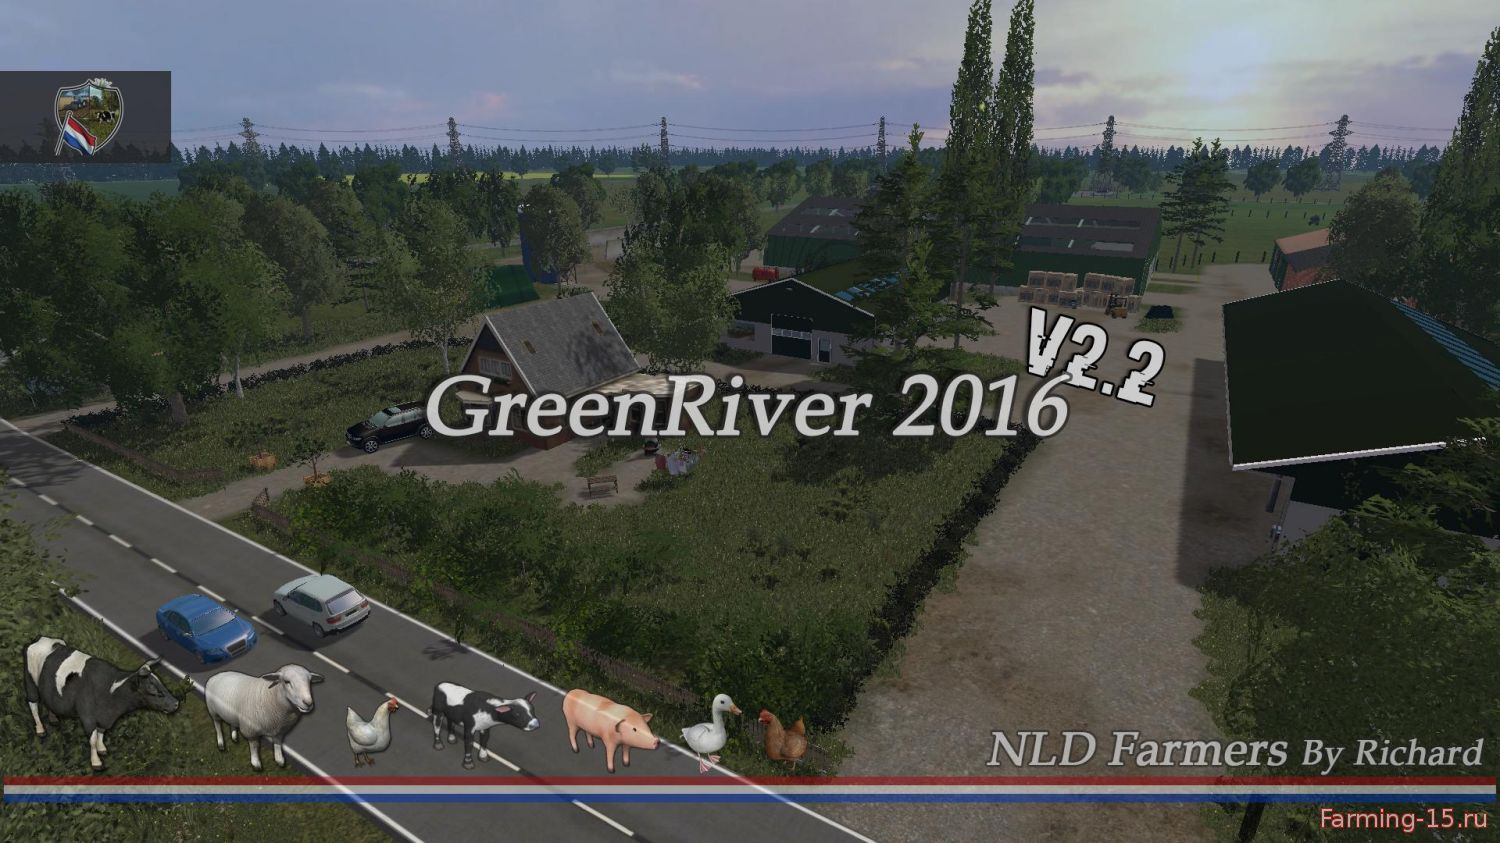 Карты для Карта Green River 2016 v2.2 для Farming Simulator 2015